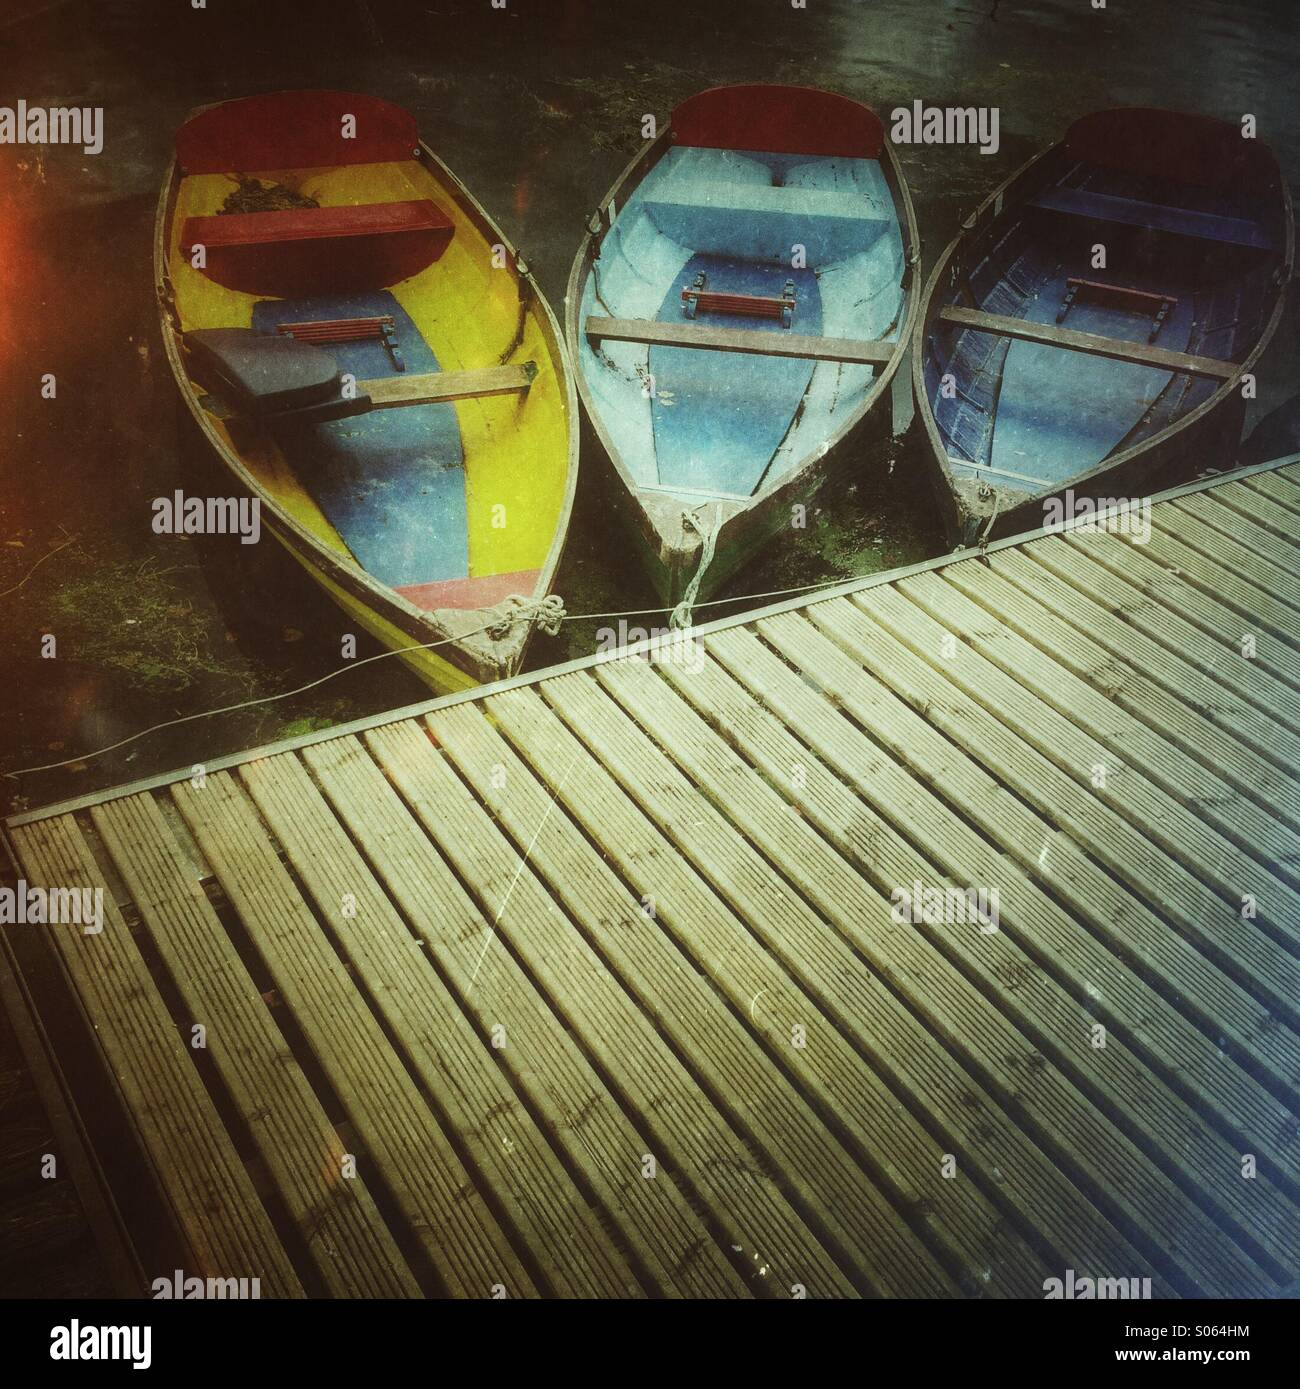 Three colourful rowing boats tied up onto a wooden jetty - Stock Image